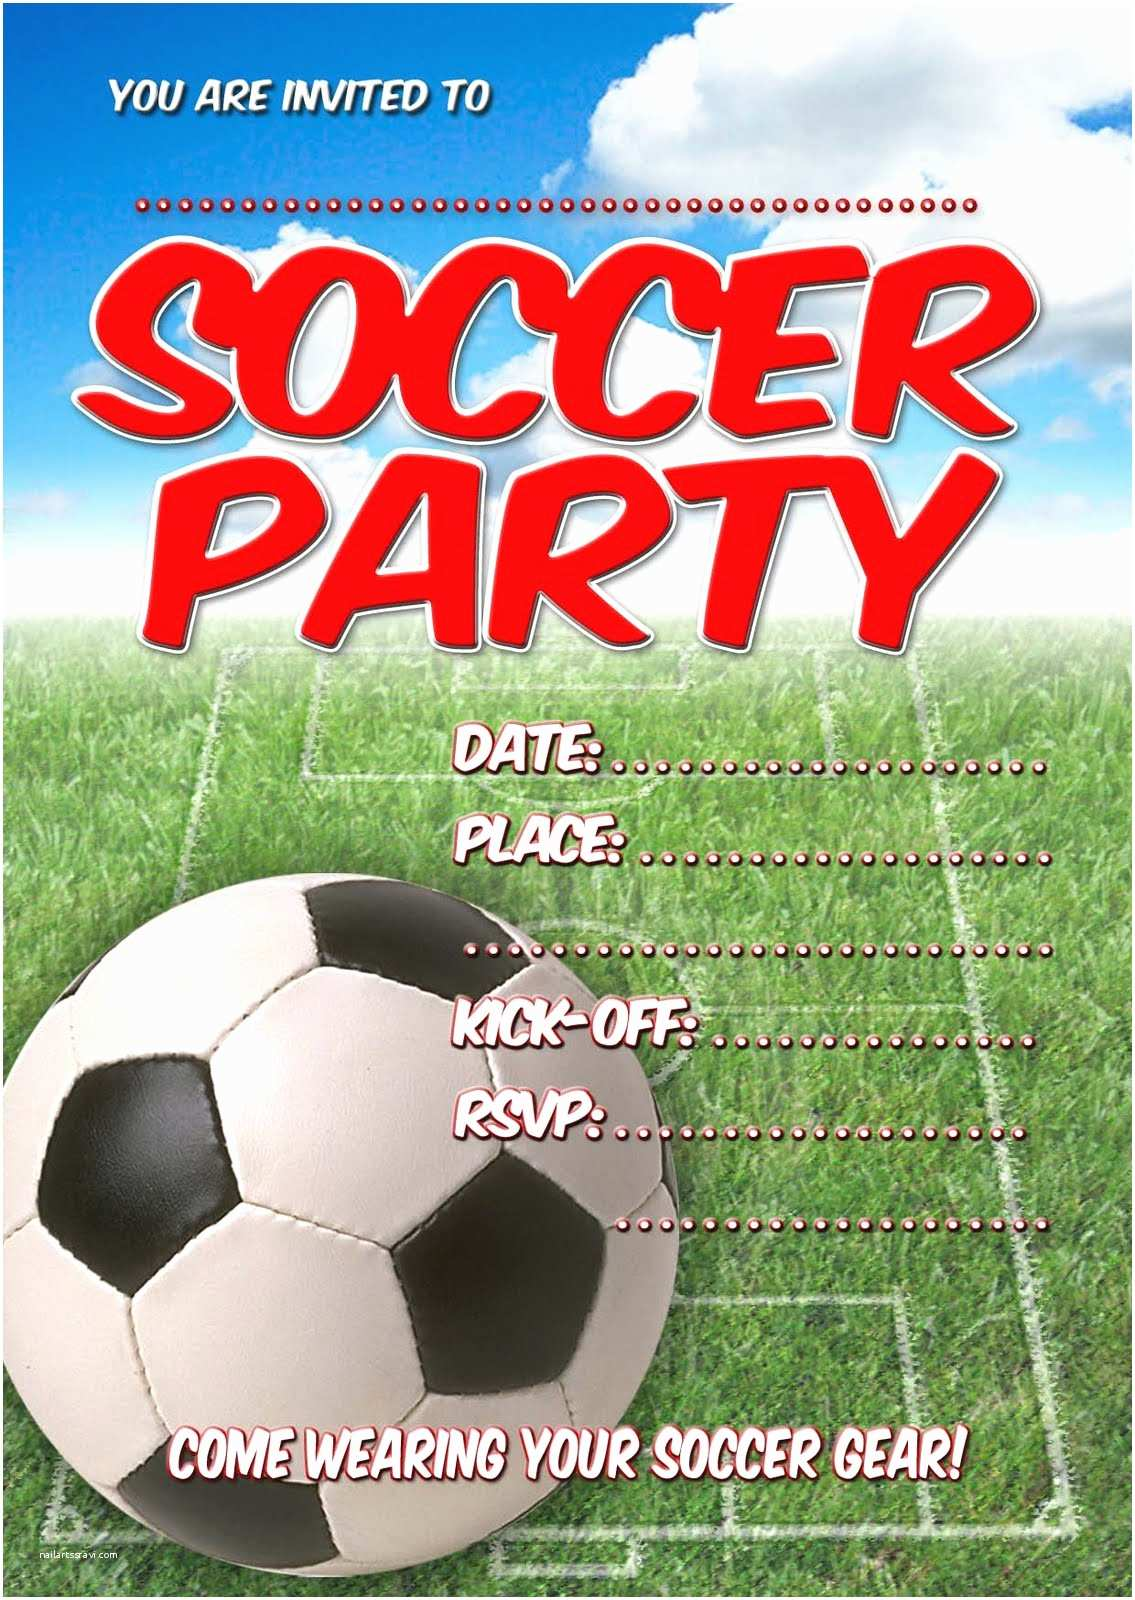 Soccer Party Invitations Free Kids Party Invitations soccer Party Invitation